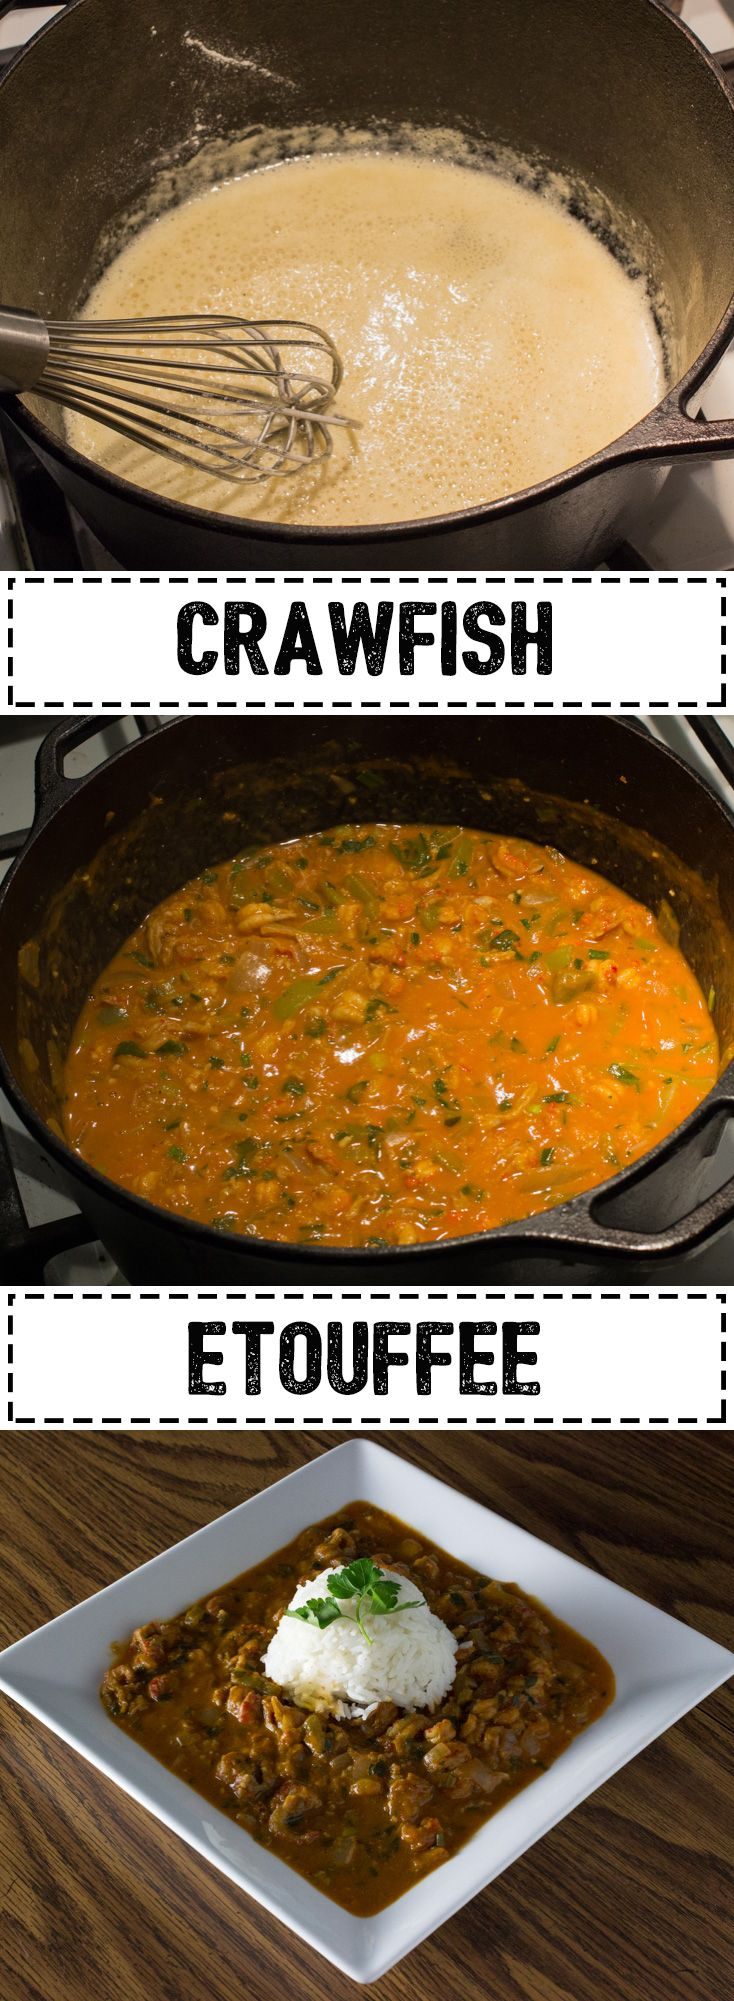 Crawfish Etouffee, try this classic New Orleans dish tonight.